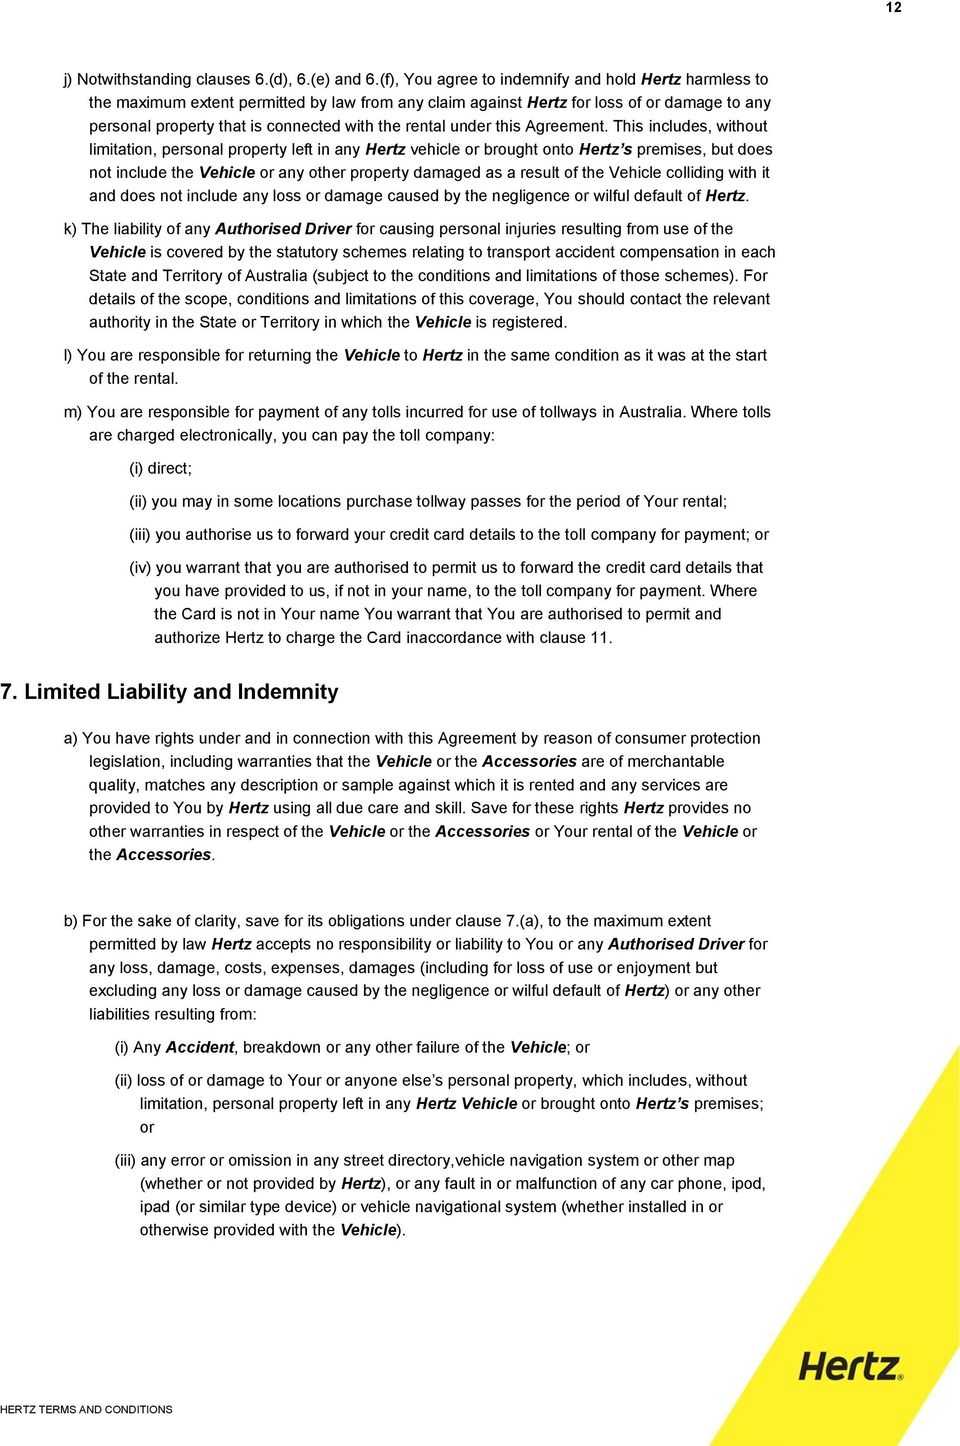 Hertz Terms And Conditions Of Rental Pdf